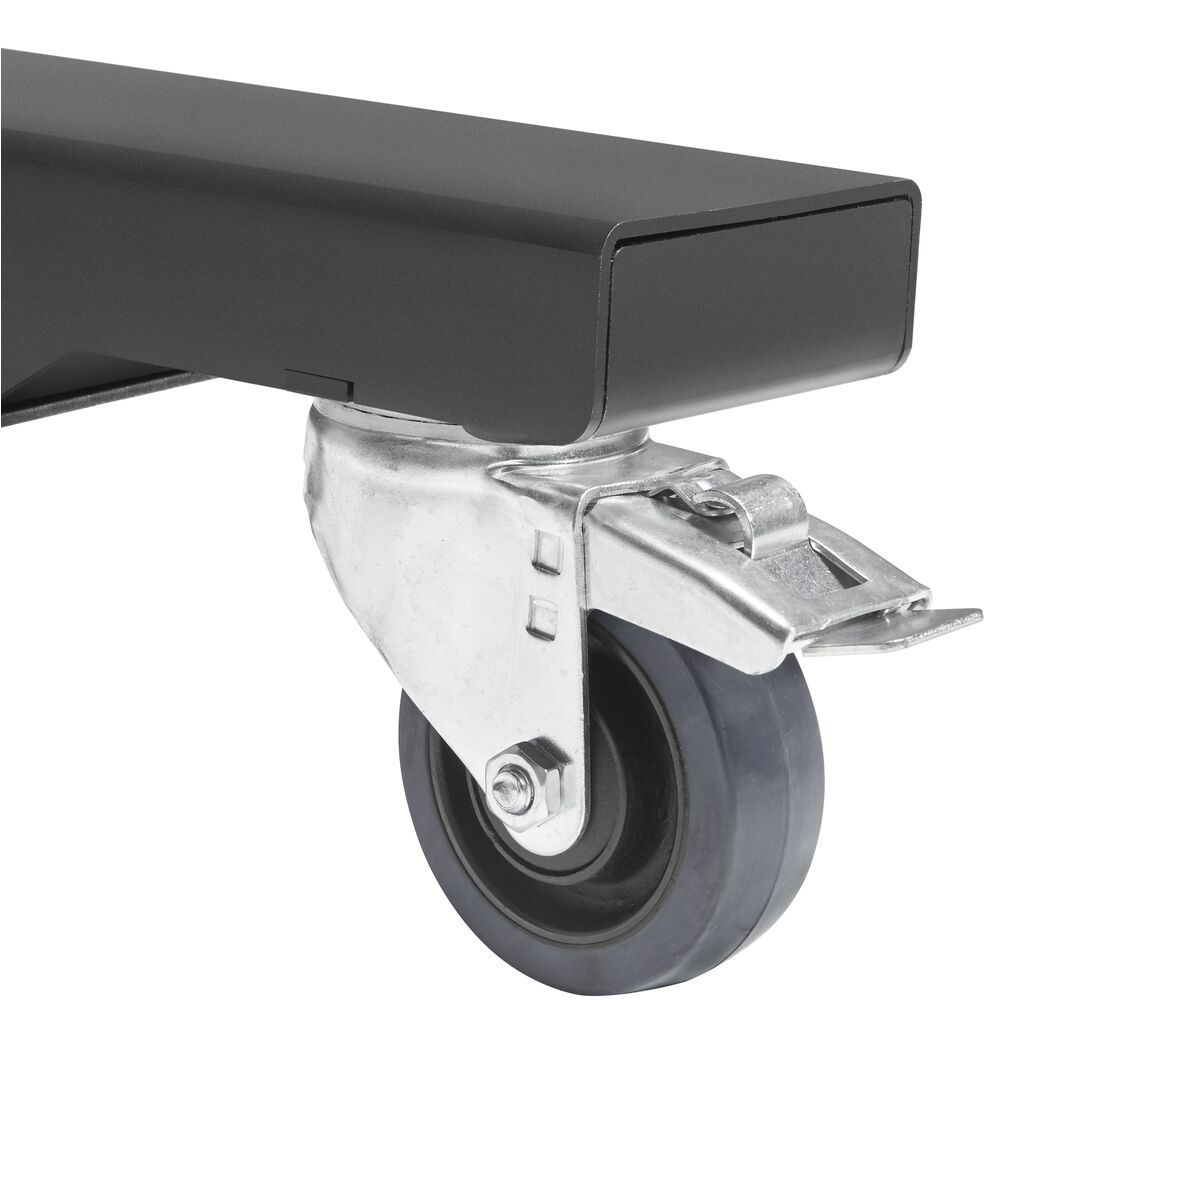 Vogel's PFT 8920 Trolley pour mur video base - Detail